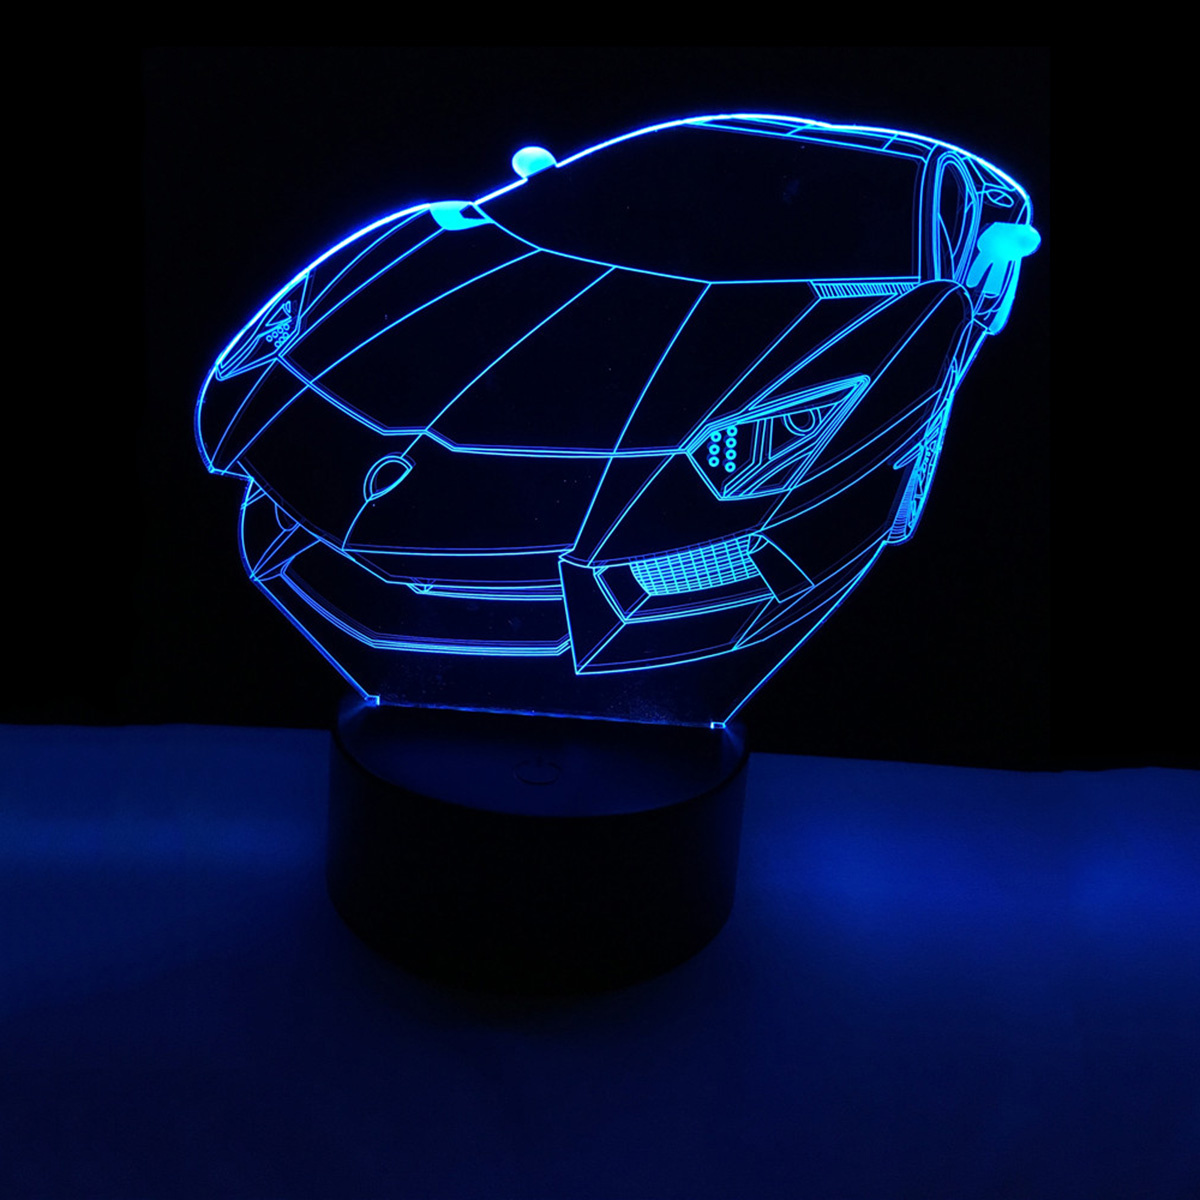 Colorful 3D Car USB LED Luminaria Acrylic Night Light Touch Switch Nightlight Home Decor Creative Atmosphere Bedroom Desk Lamp abstract 3d creative colorful nightlight